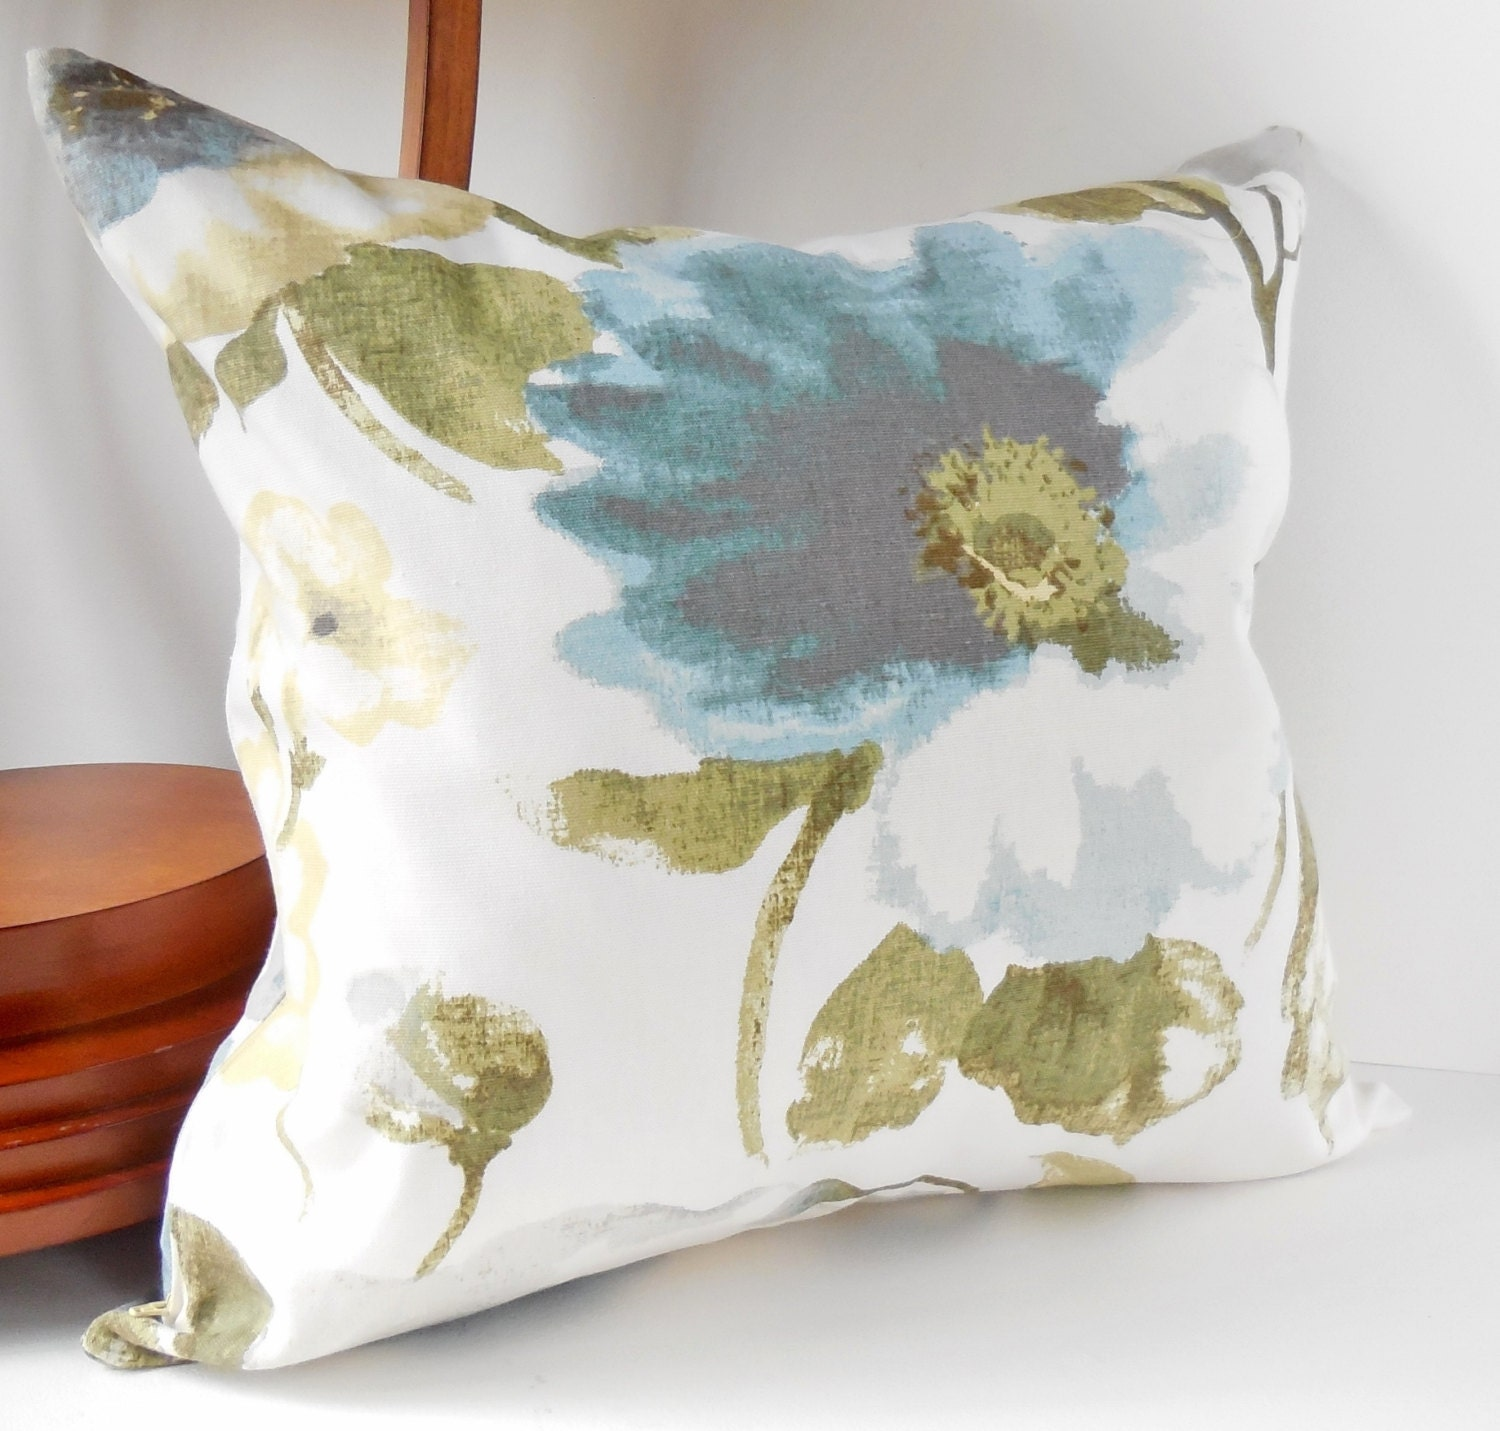 Pillows Decorative Throw Pillows Large Blue Beige and Gray